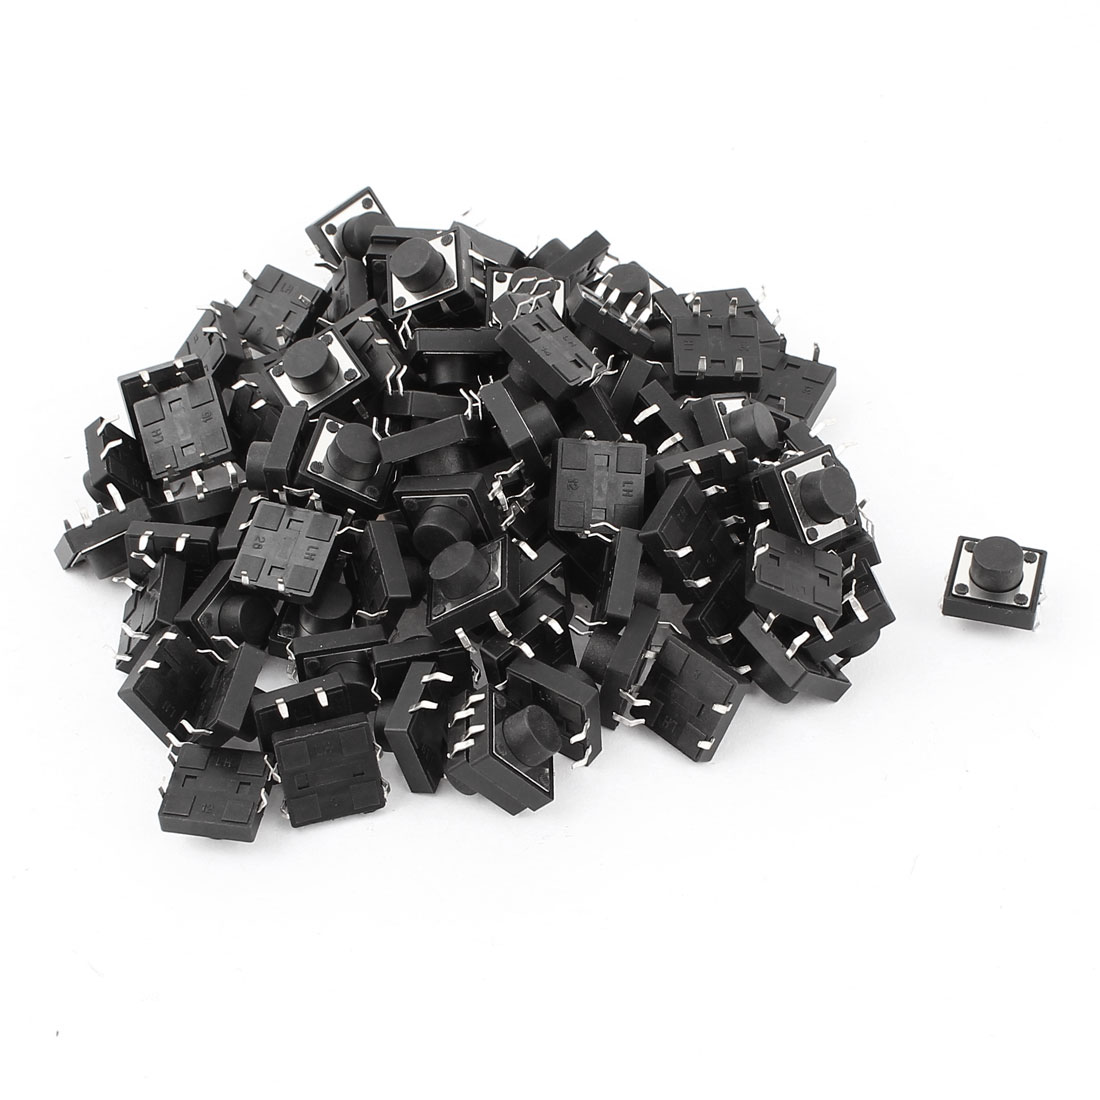 50 Pcs DIP 4 Pins Push Button Momentary Tactile Switch 12x12x7mm